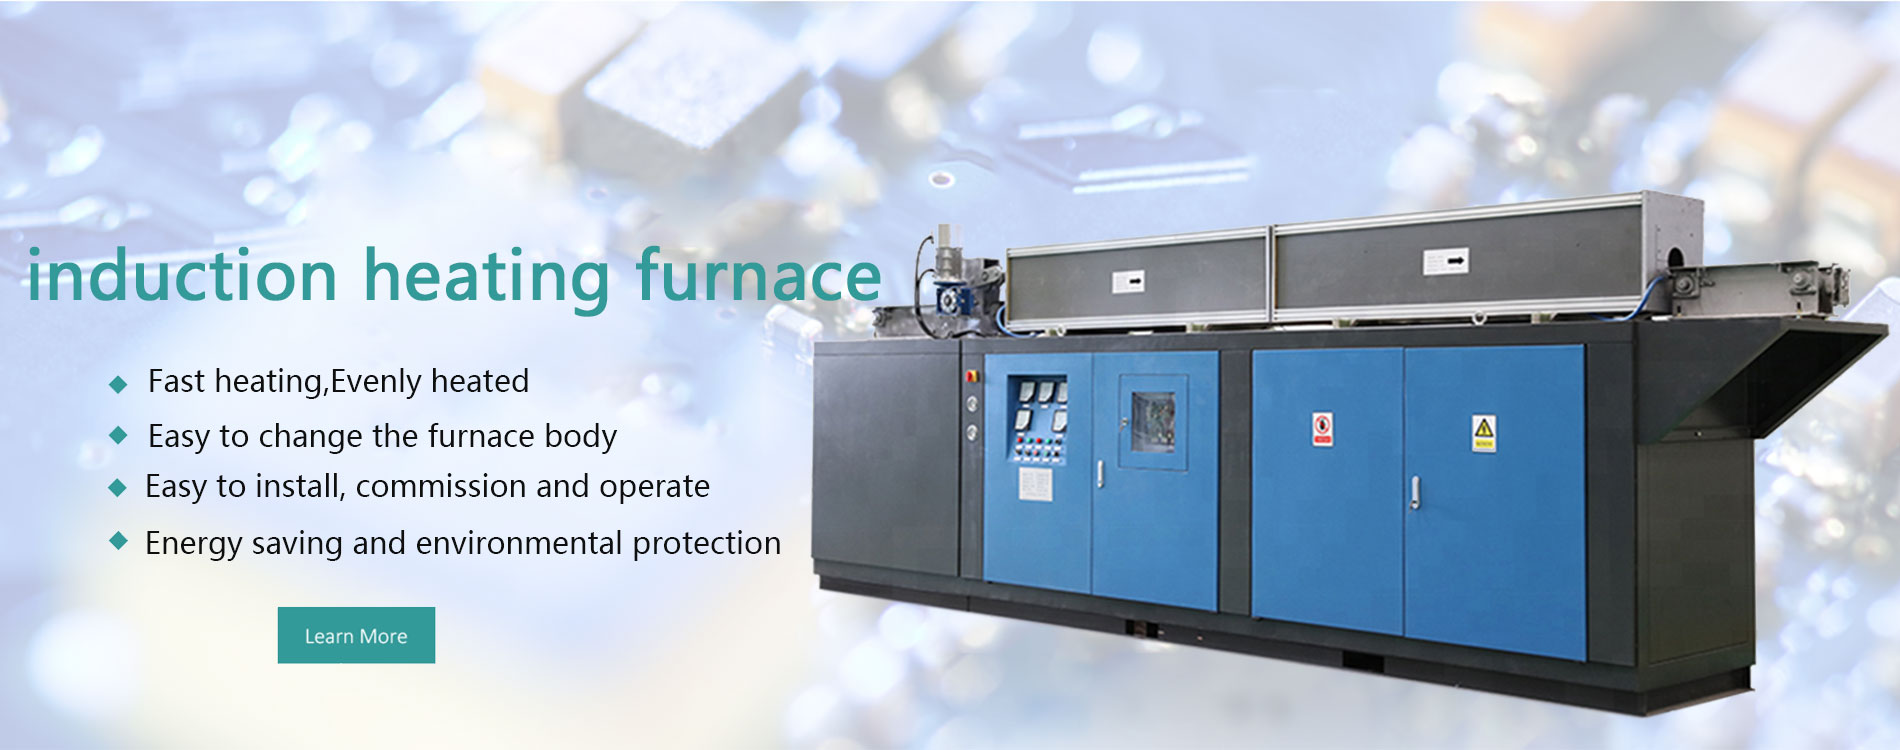 Luoyang Songdao induction heating technology Co., Ltd.